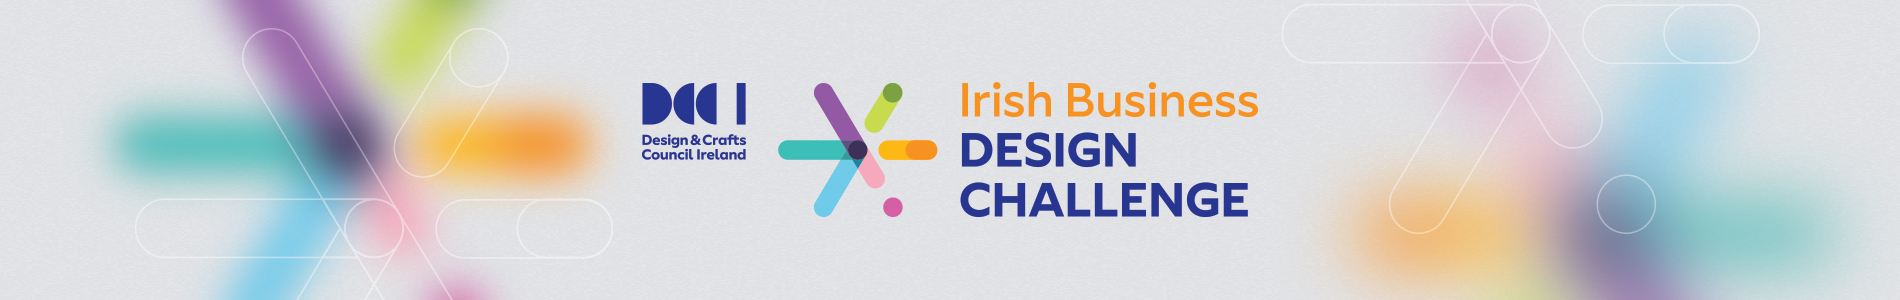 Irish Business Design Challenge